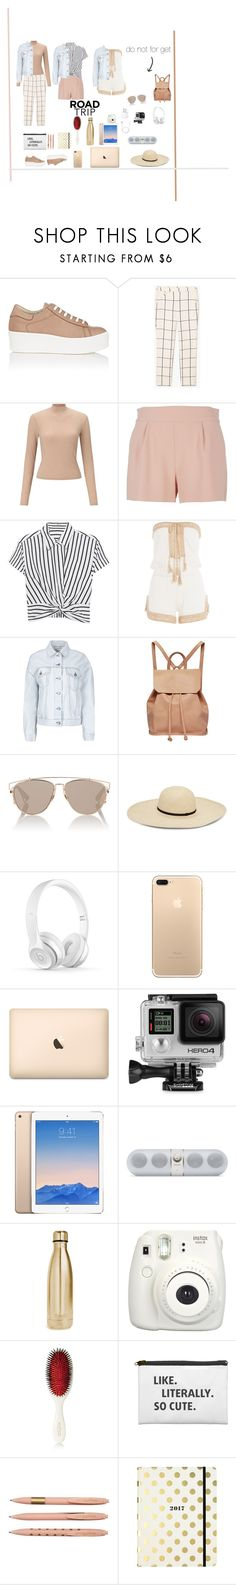 """""""DID SOMEONE SAY ROAD TRIP"""" by stylebellebelle ❤ liked on Polyvore featuring Barneys New York, MANGO, Miss Selfridge, Moschino, T By Alexander Wang, Anna Kosturova, Acne Studios, Urban Originals, Christian Dior and GoPro"""